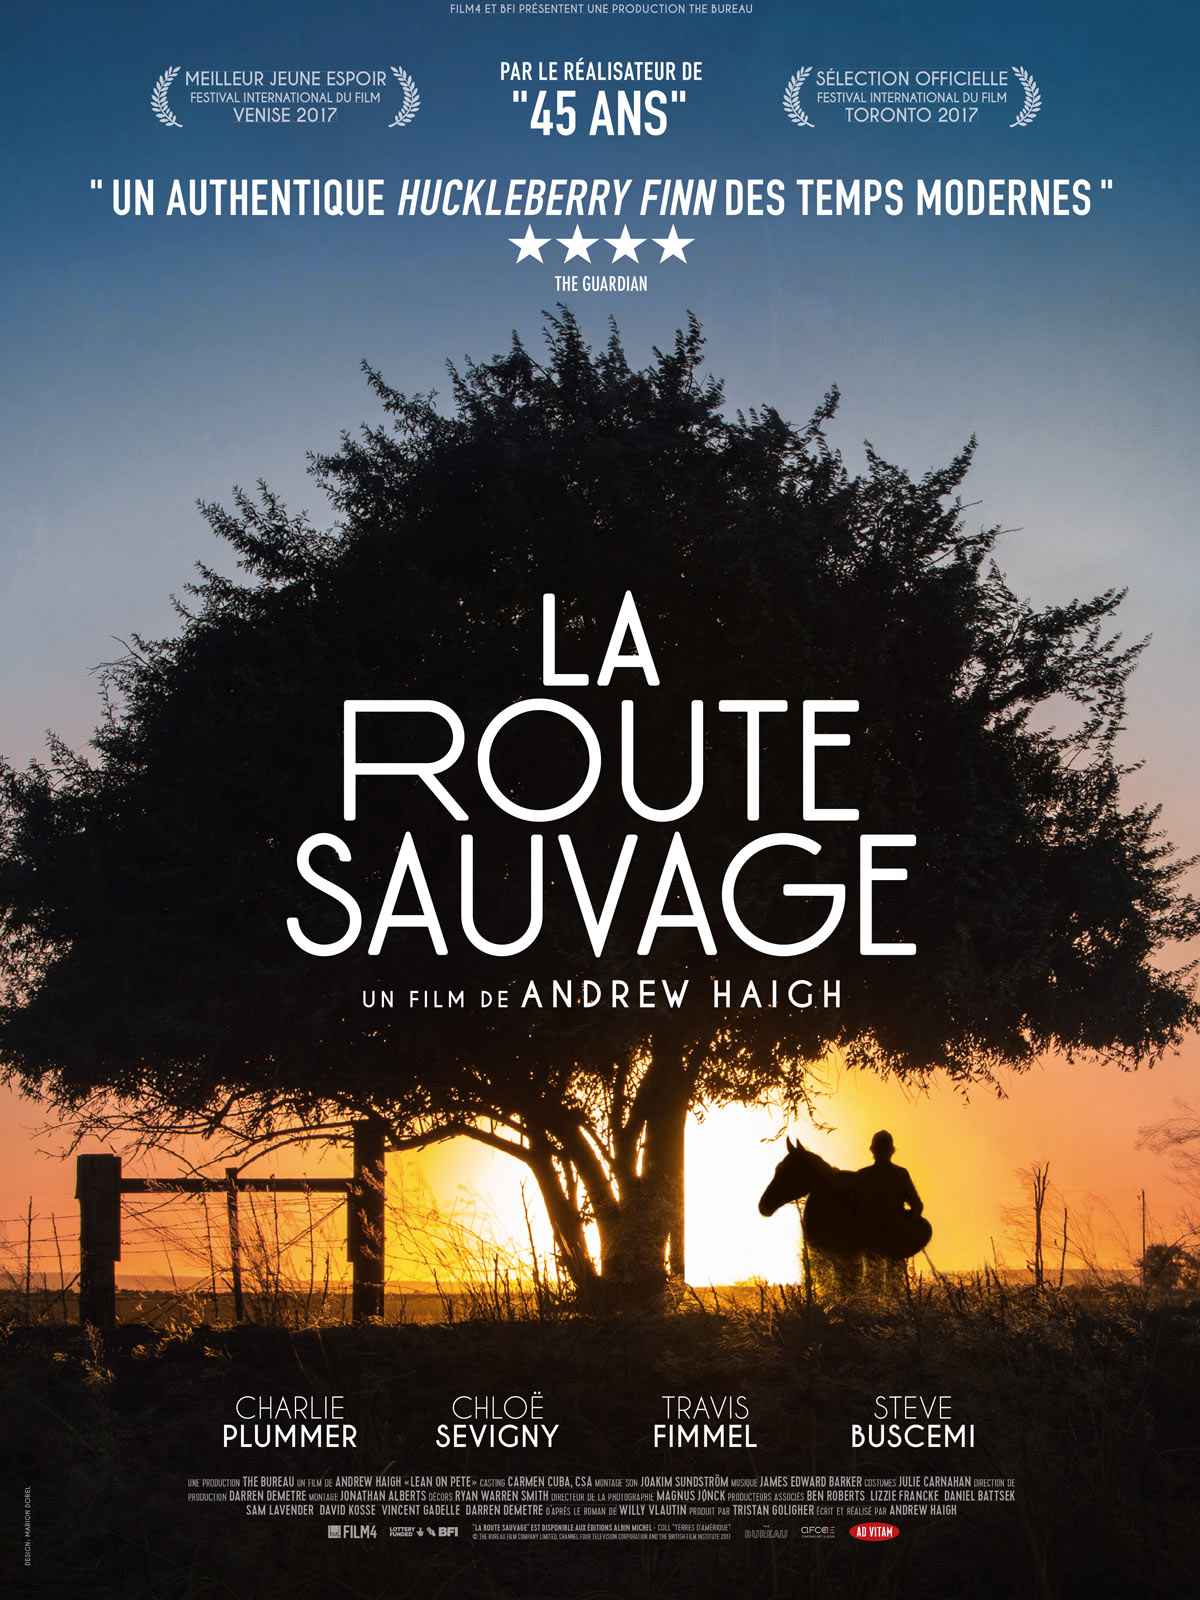 Route sauvage